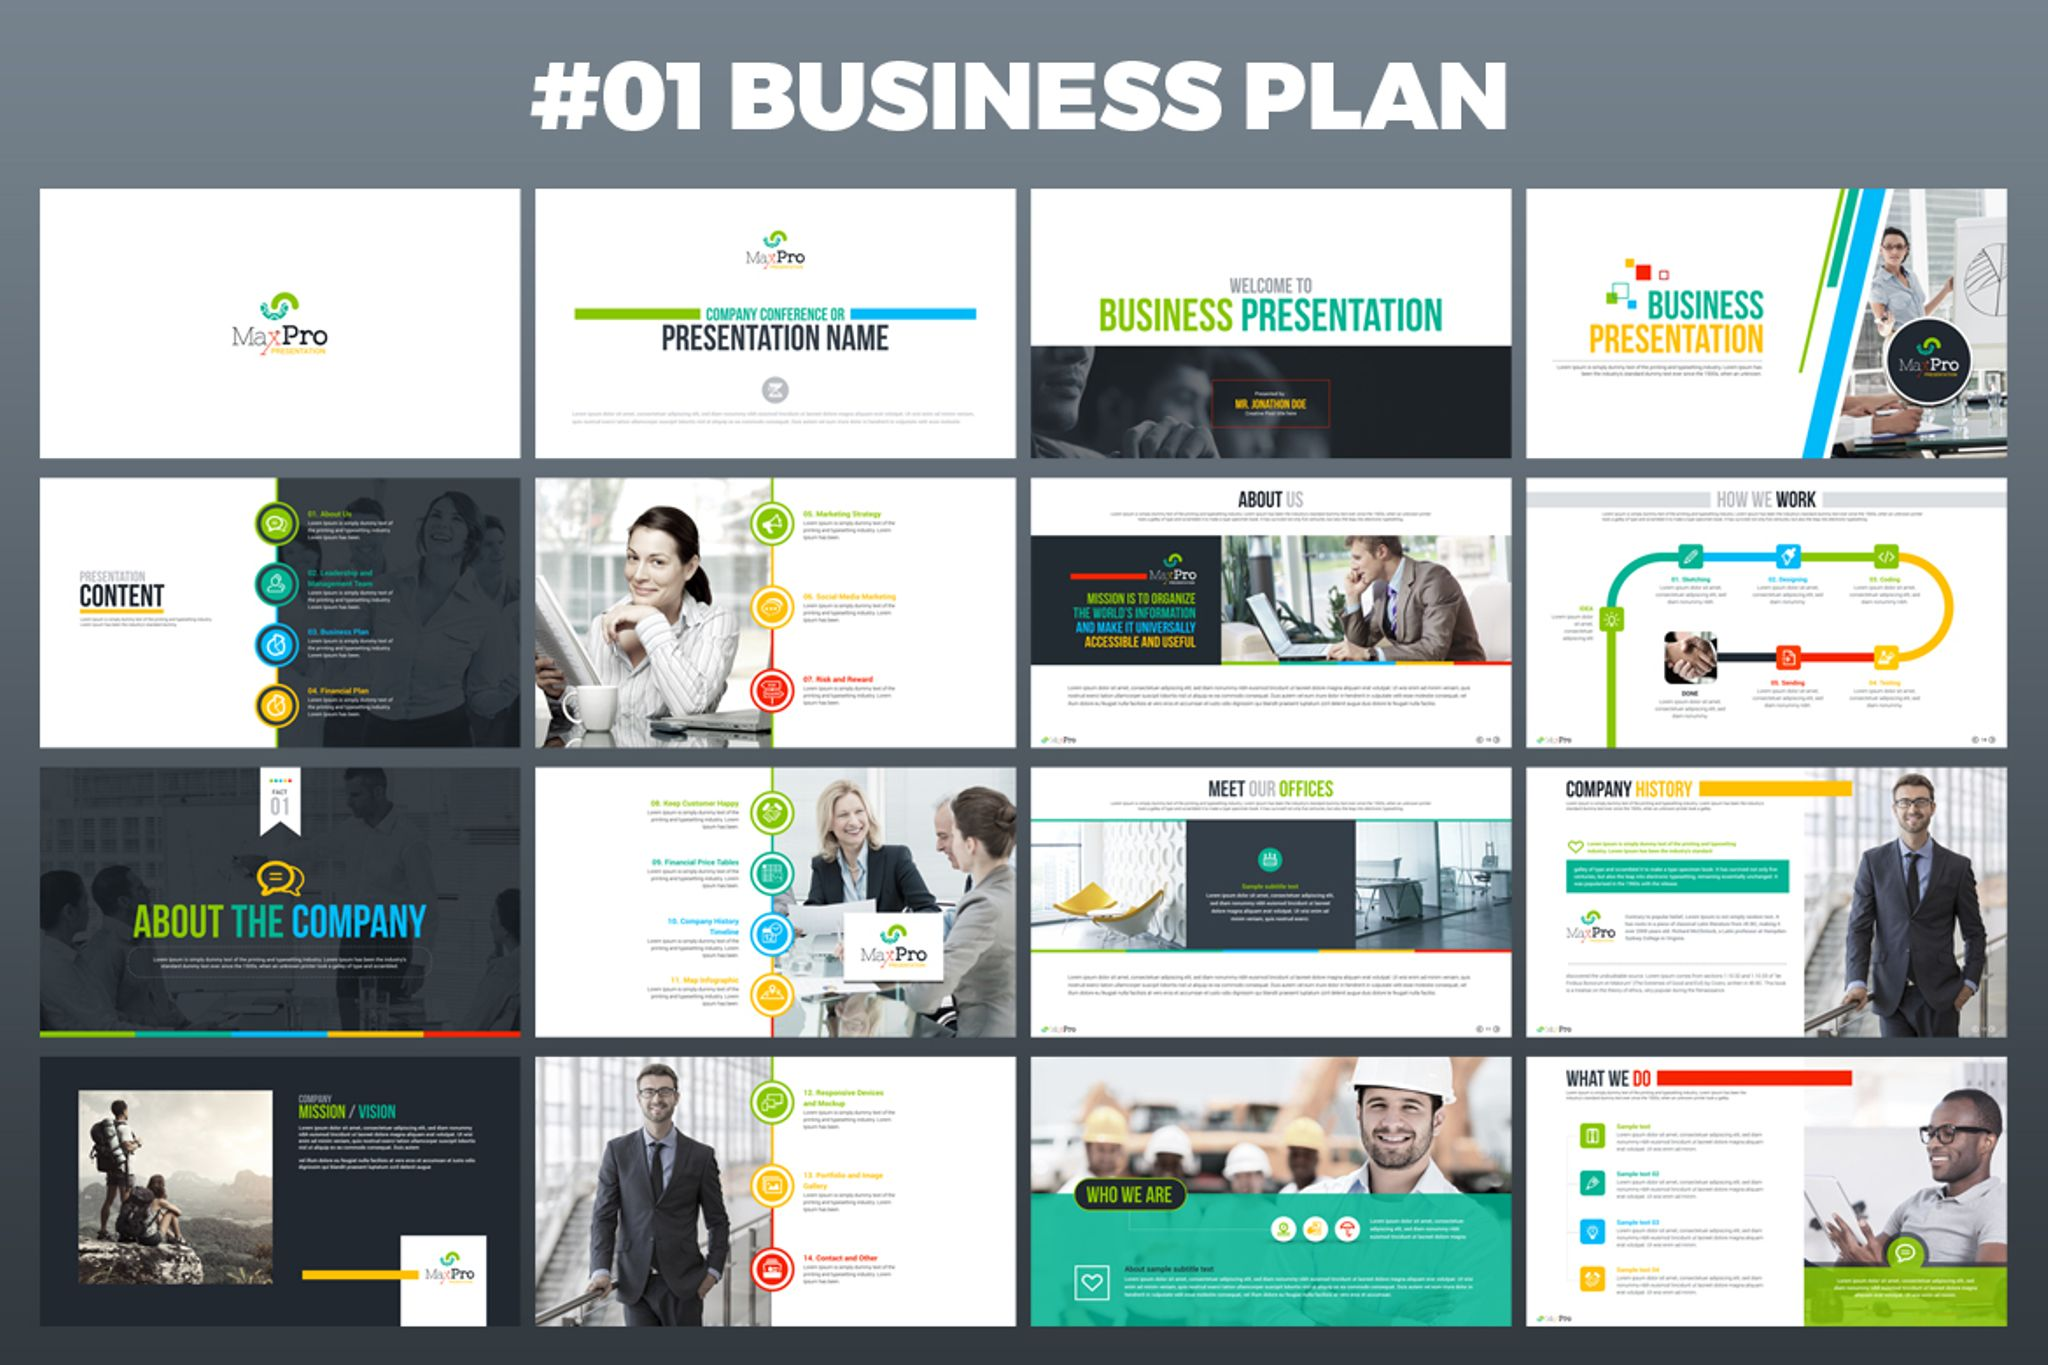 Maxpro business plan powerpoint template 66751 maxpro business plan powerpoint template big screenshot flashek